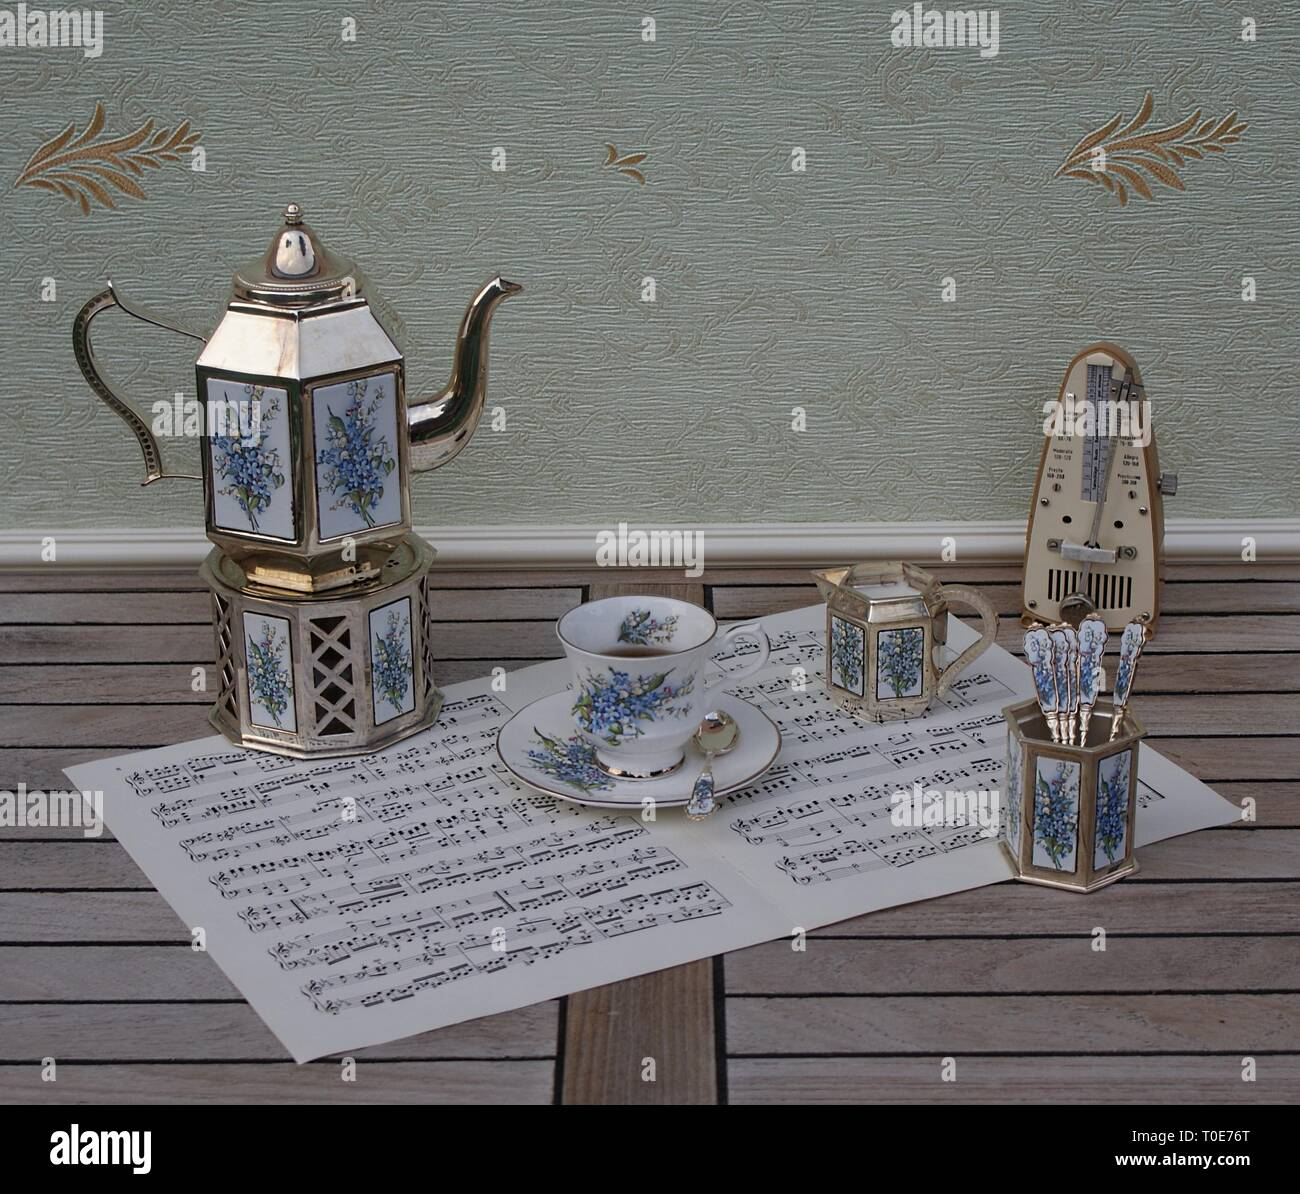 English teacup and saucer, silver-plated teapot on a silver stove, spoon vase, teaspoon and cream jug and metronome for music on a sheet of music - Stock Image